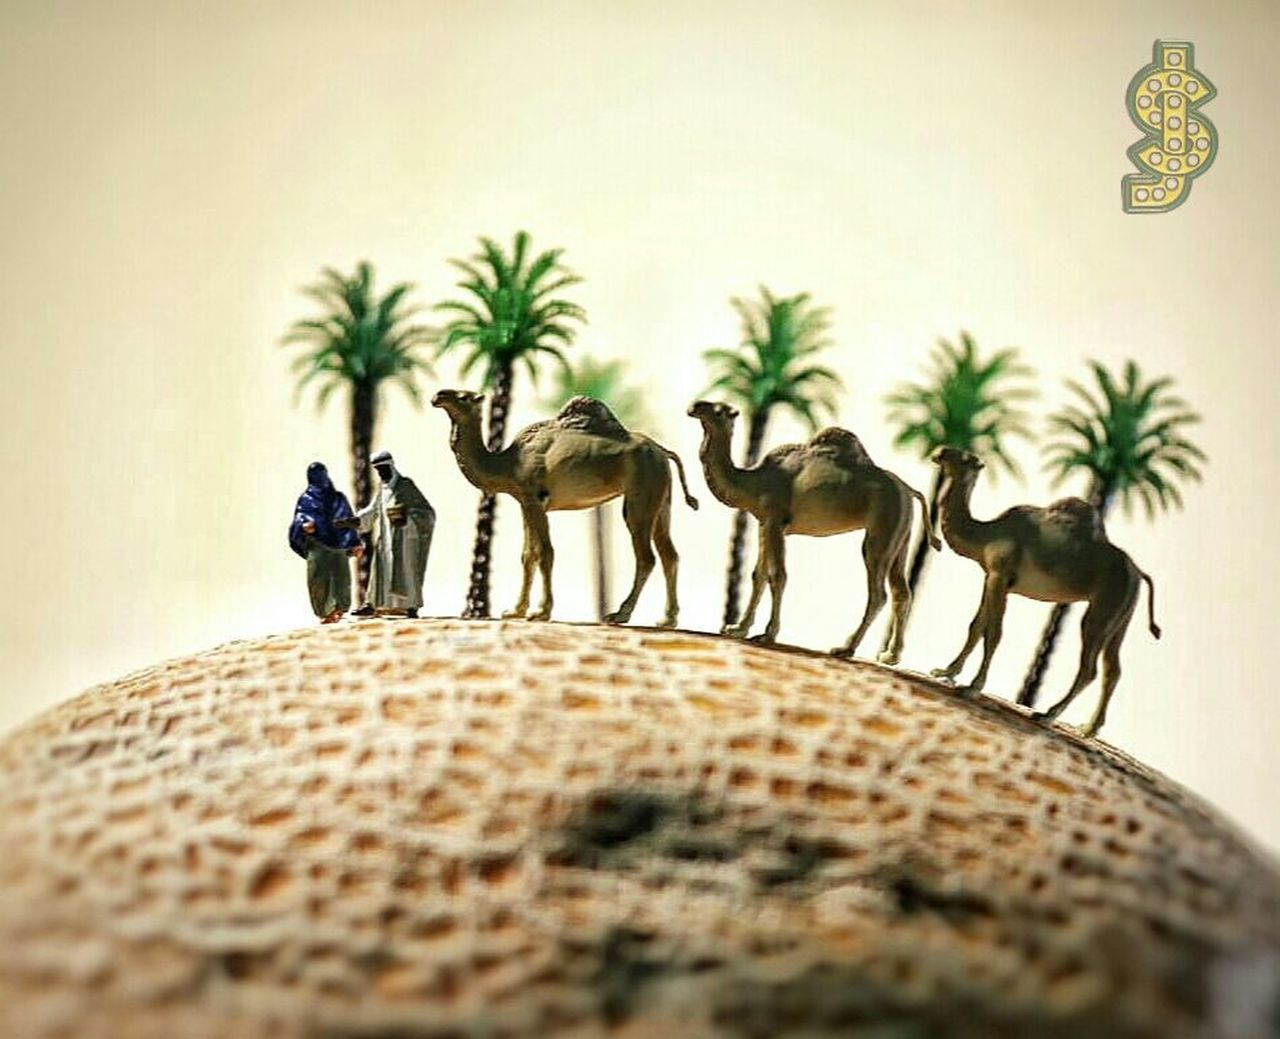 Miniature Miniatures Toyphotography Abudhabi Dubai Uae #dubai #sharjah #ajman #rak #fujairah #alain #abudhabi #ummalquwain #instagood #instamood #instalike #mydubai #myuae #dubaigems #emirates #dxb #myabudhabi #shj #insharjah #qatar Oman Bahrain Kuwait Ksa [ Taking Photos Camel Tree Desert Photography Bounty #coconut #chocolate #delicious Check This Out Hot Toycommunity Toygroup_alliance Toycrewbuddies Toyunion Toydiscovery Toyplanet Toys4life Toyphotographer Toycommunities Toyboners Toyrevolution